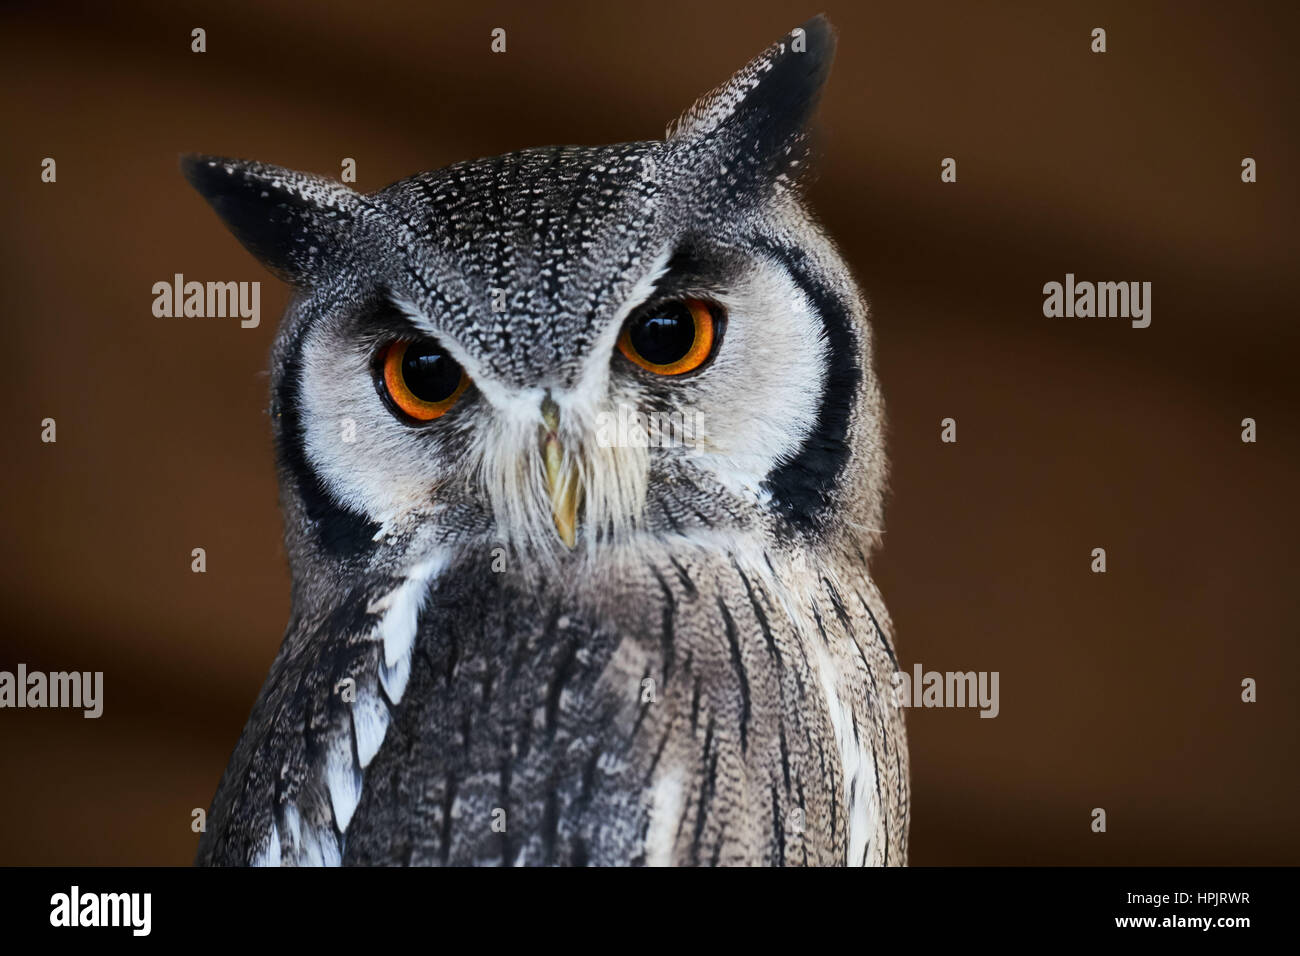 southern faced owl - Stock Image